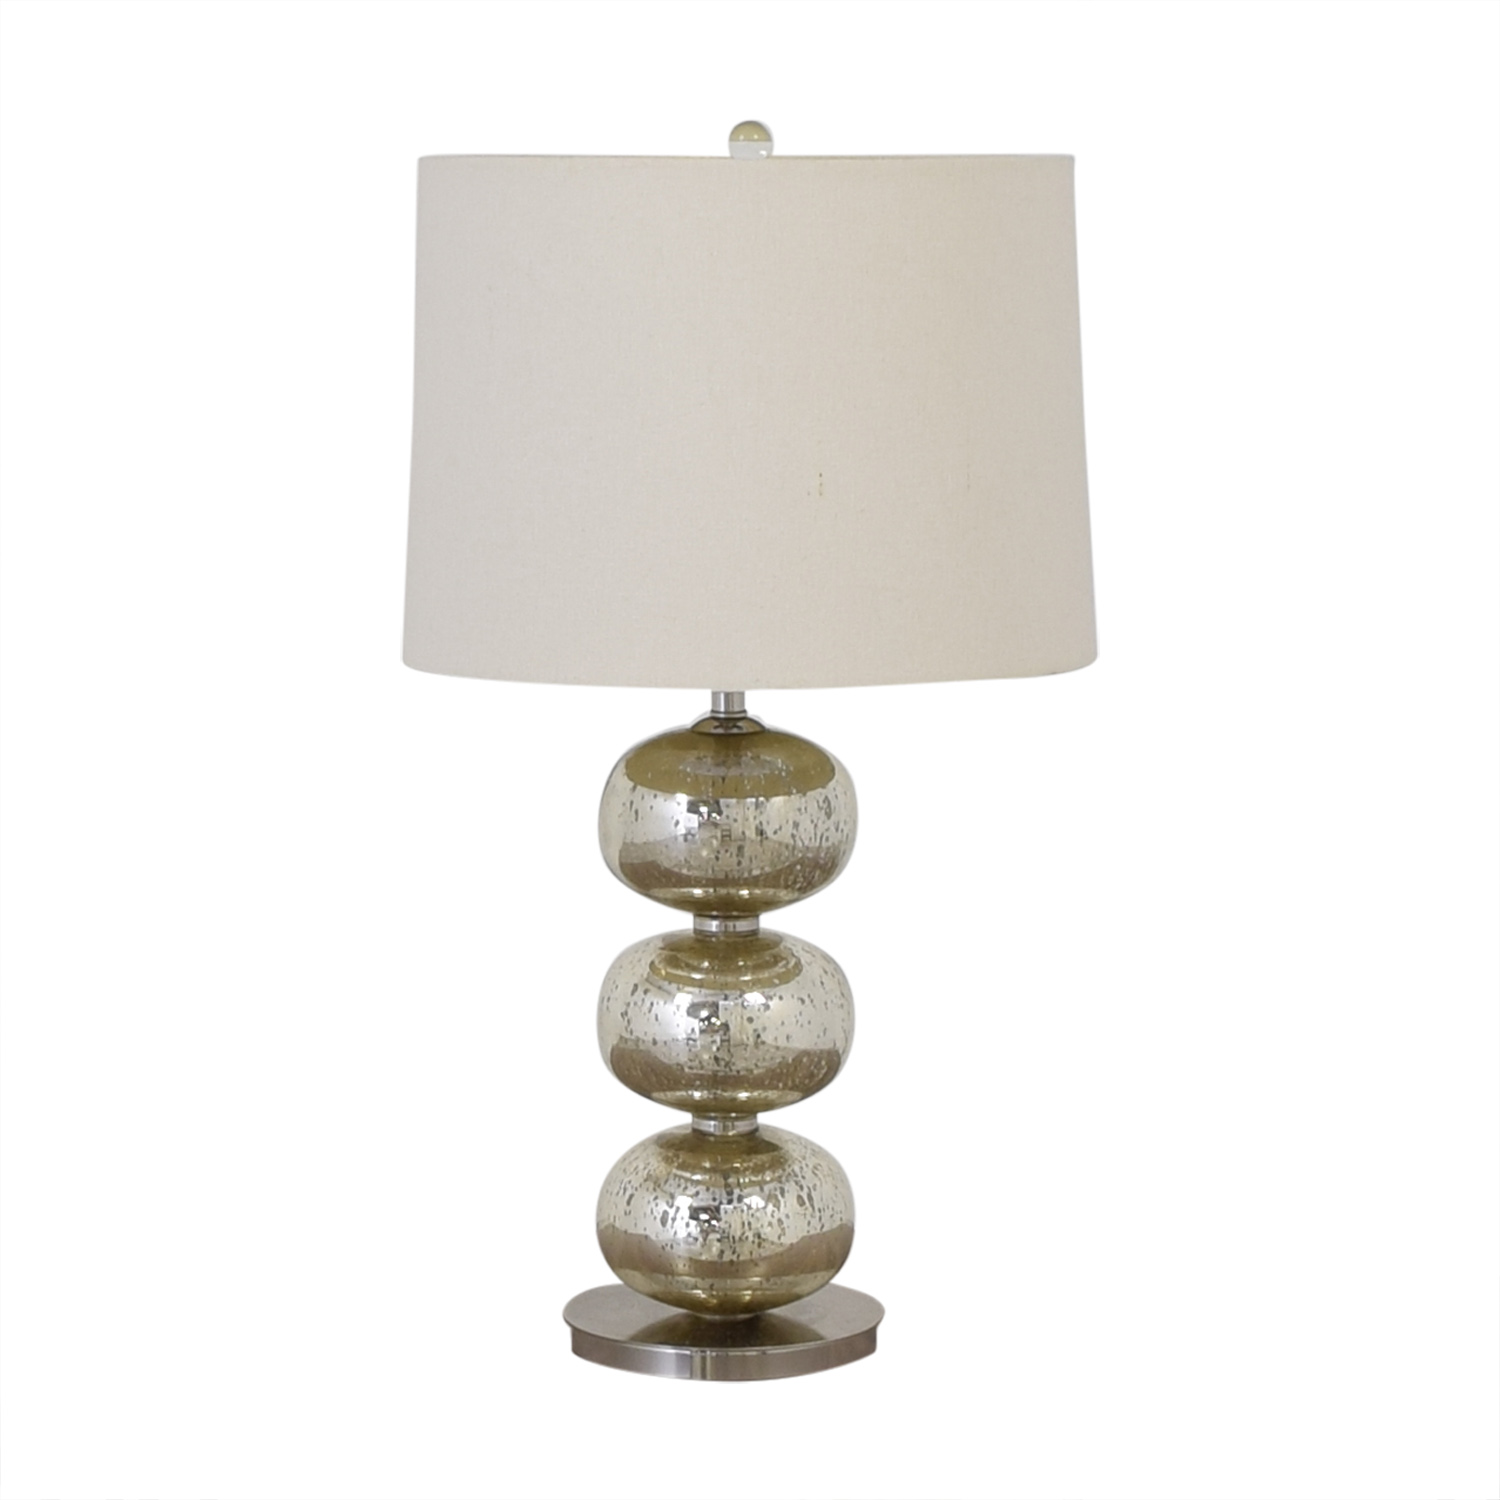 West Elm West Elm Abacus Table Lamp nyc